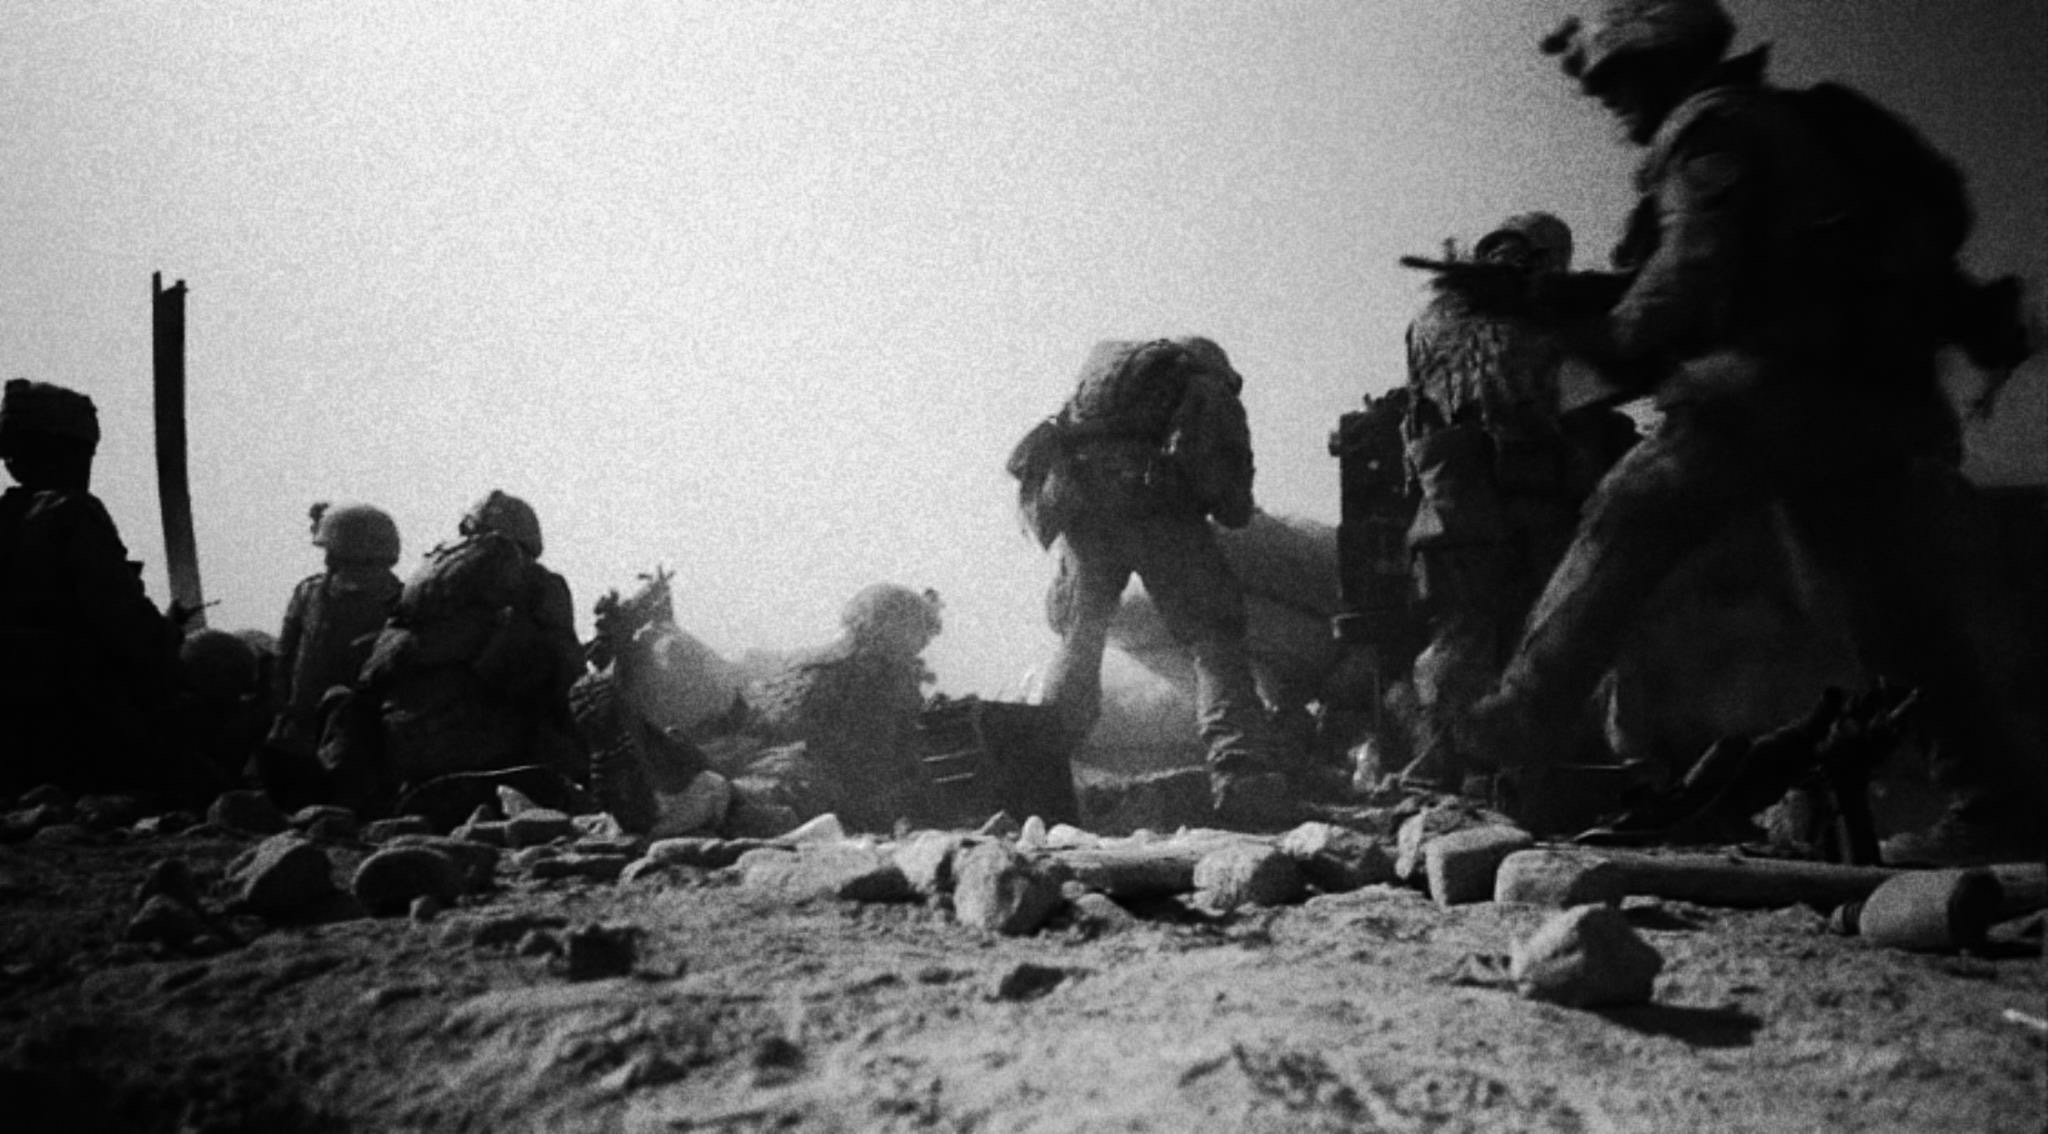 US Troops hold down a position against the Taliban in Helmand during operation Panther Claw in 2009. Barack Obama raised the amount of troops in the south to 40,000 to help clear the insurgency and assist the British army in Helmand. Two US soldiers were injured and one killed in this day in Marjah. © Jacob Simkin.